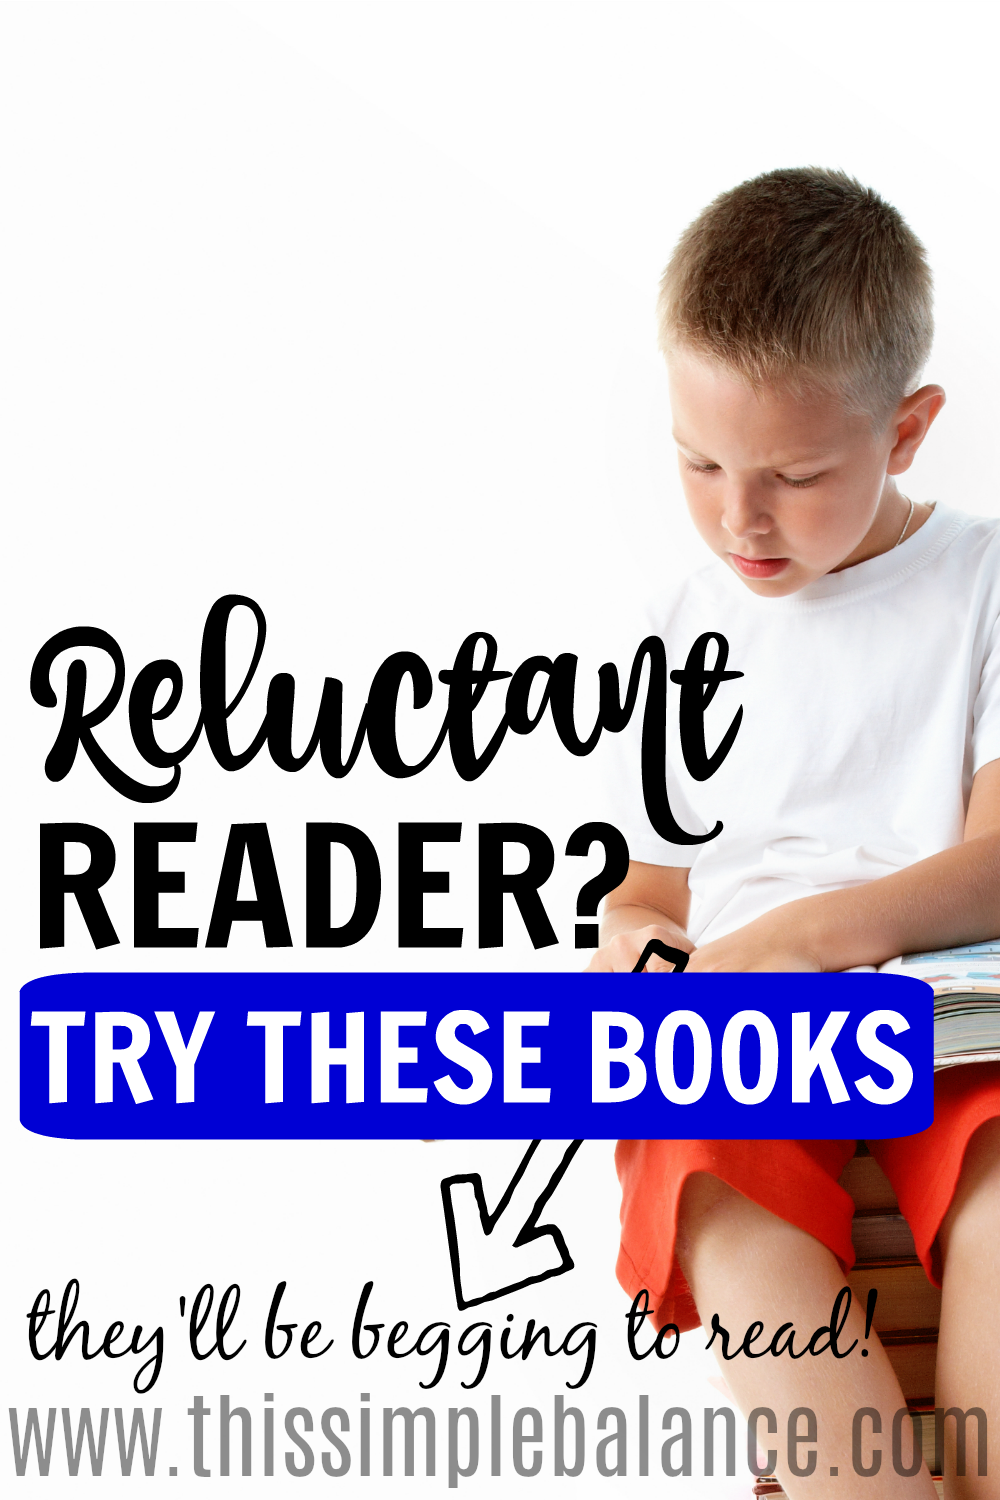 Most homeschool reading curriculums are great at the basics - a child can learn how to read using most of them, sure. But what about reluctant readers? You need to up your game to engage them and get them to really LOVE reading. This homeschool reading curriculum does the trick! #homeschooling #relaxedhomeschooling #reading